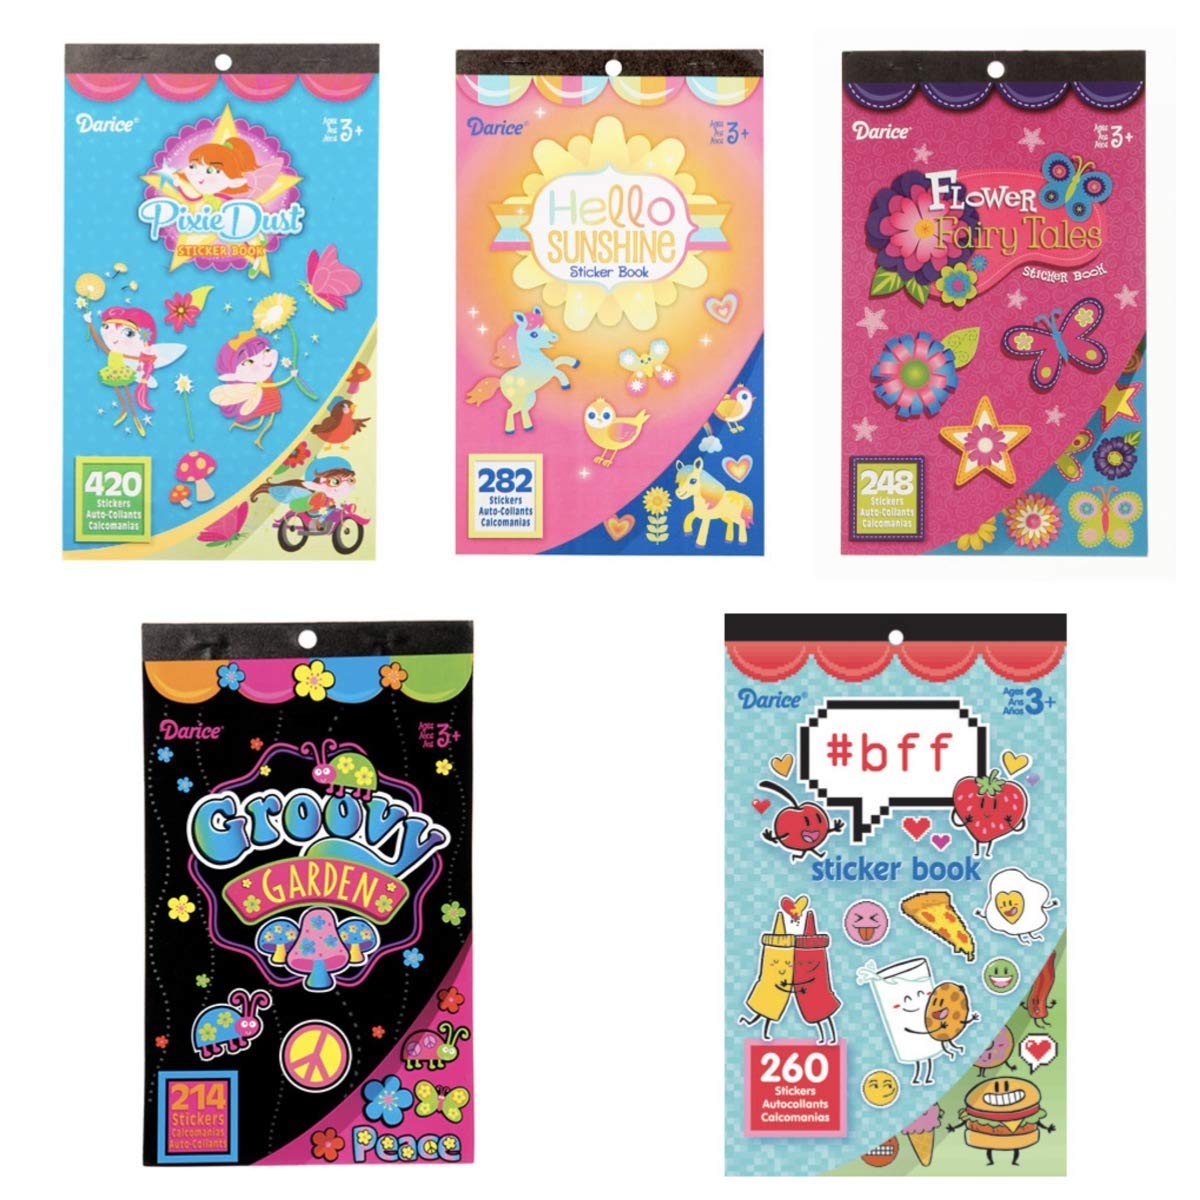 Amazon com five 5 girly girl sticker books 1400 stickers flowers pixies hearts hashtag bff teacher supplies rewards party favors classroom office